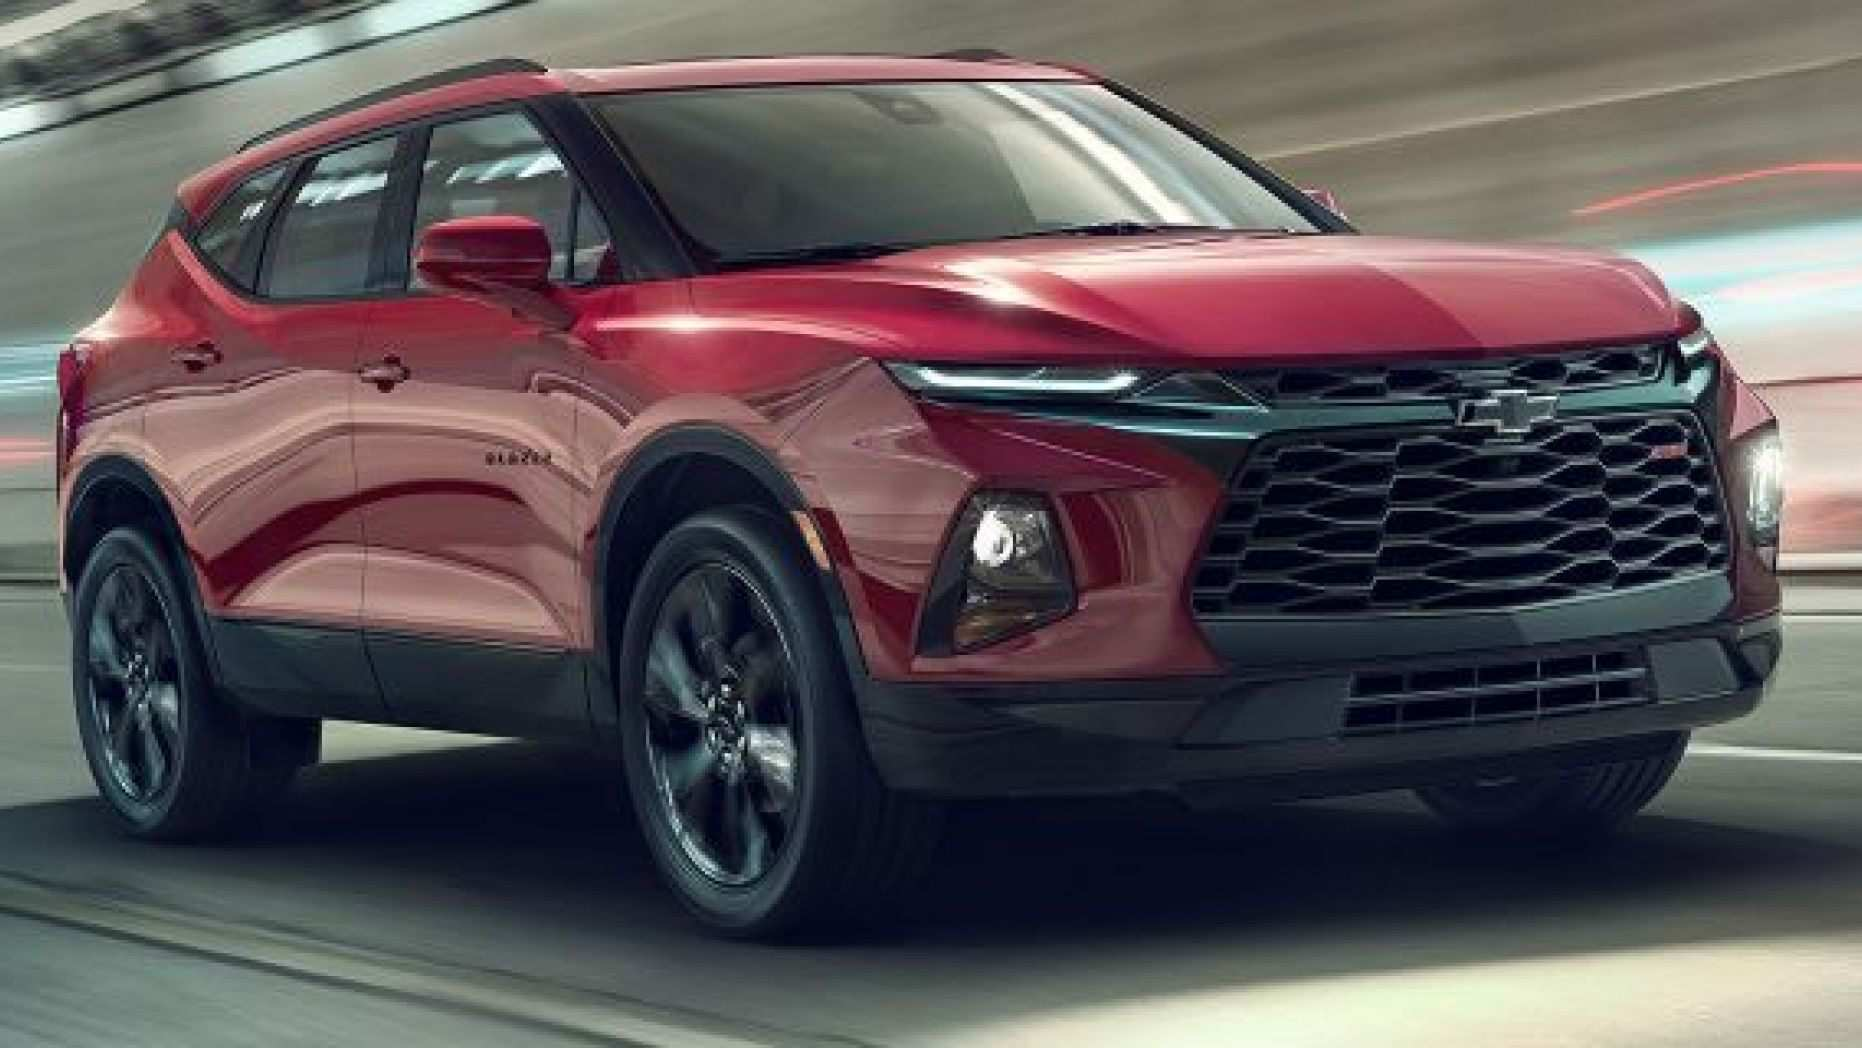 43 New 2020 Chevy Blazer Specs And Review